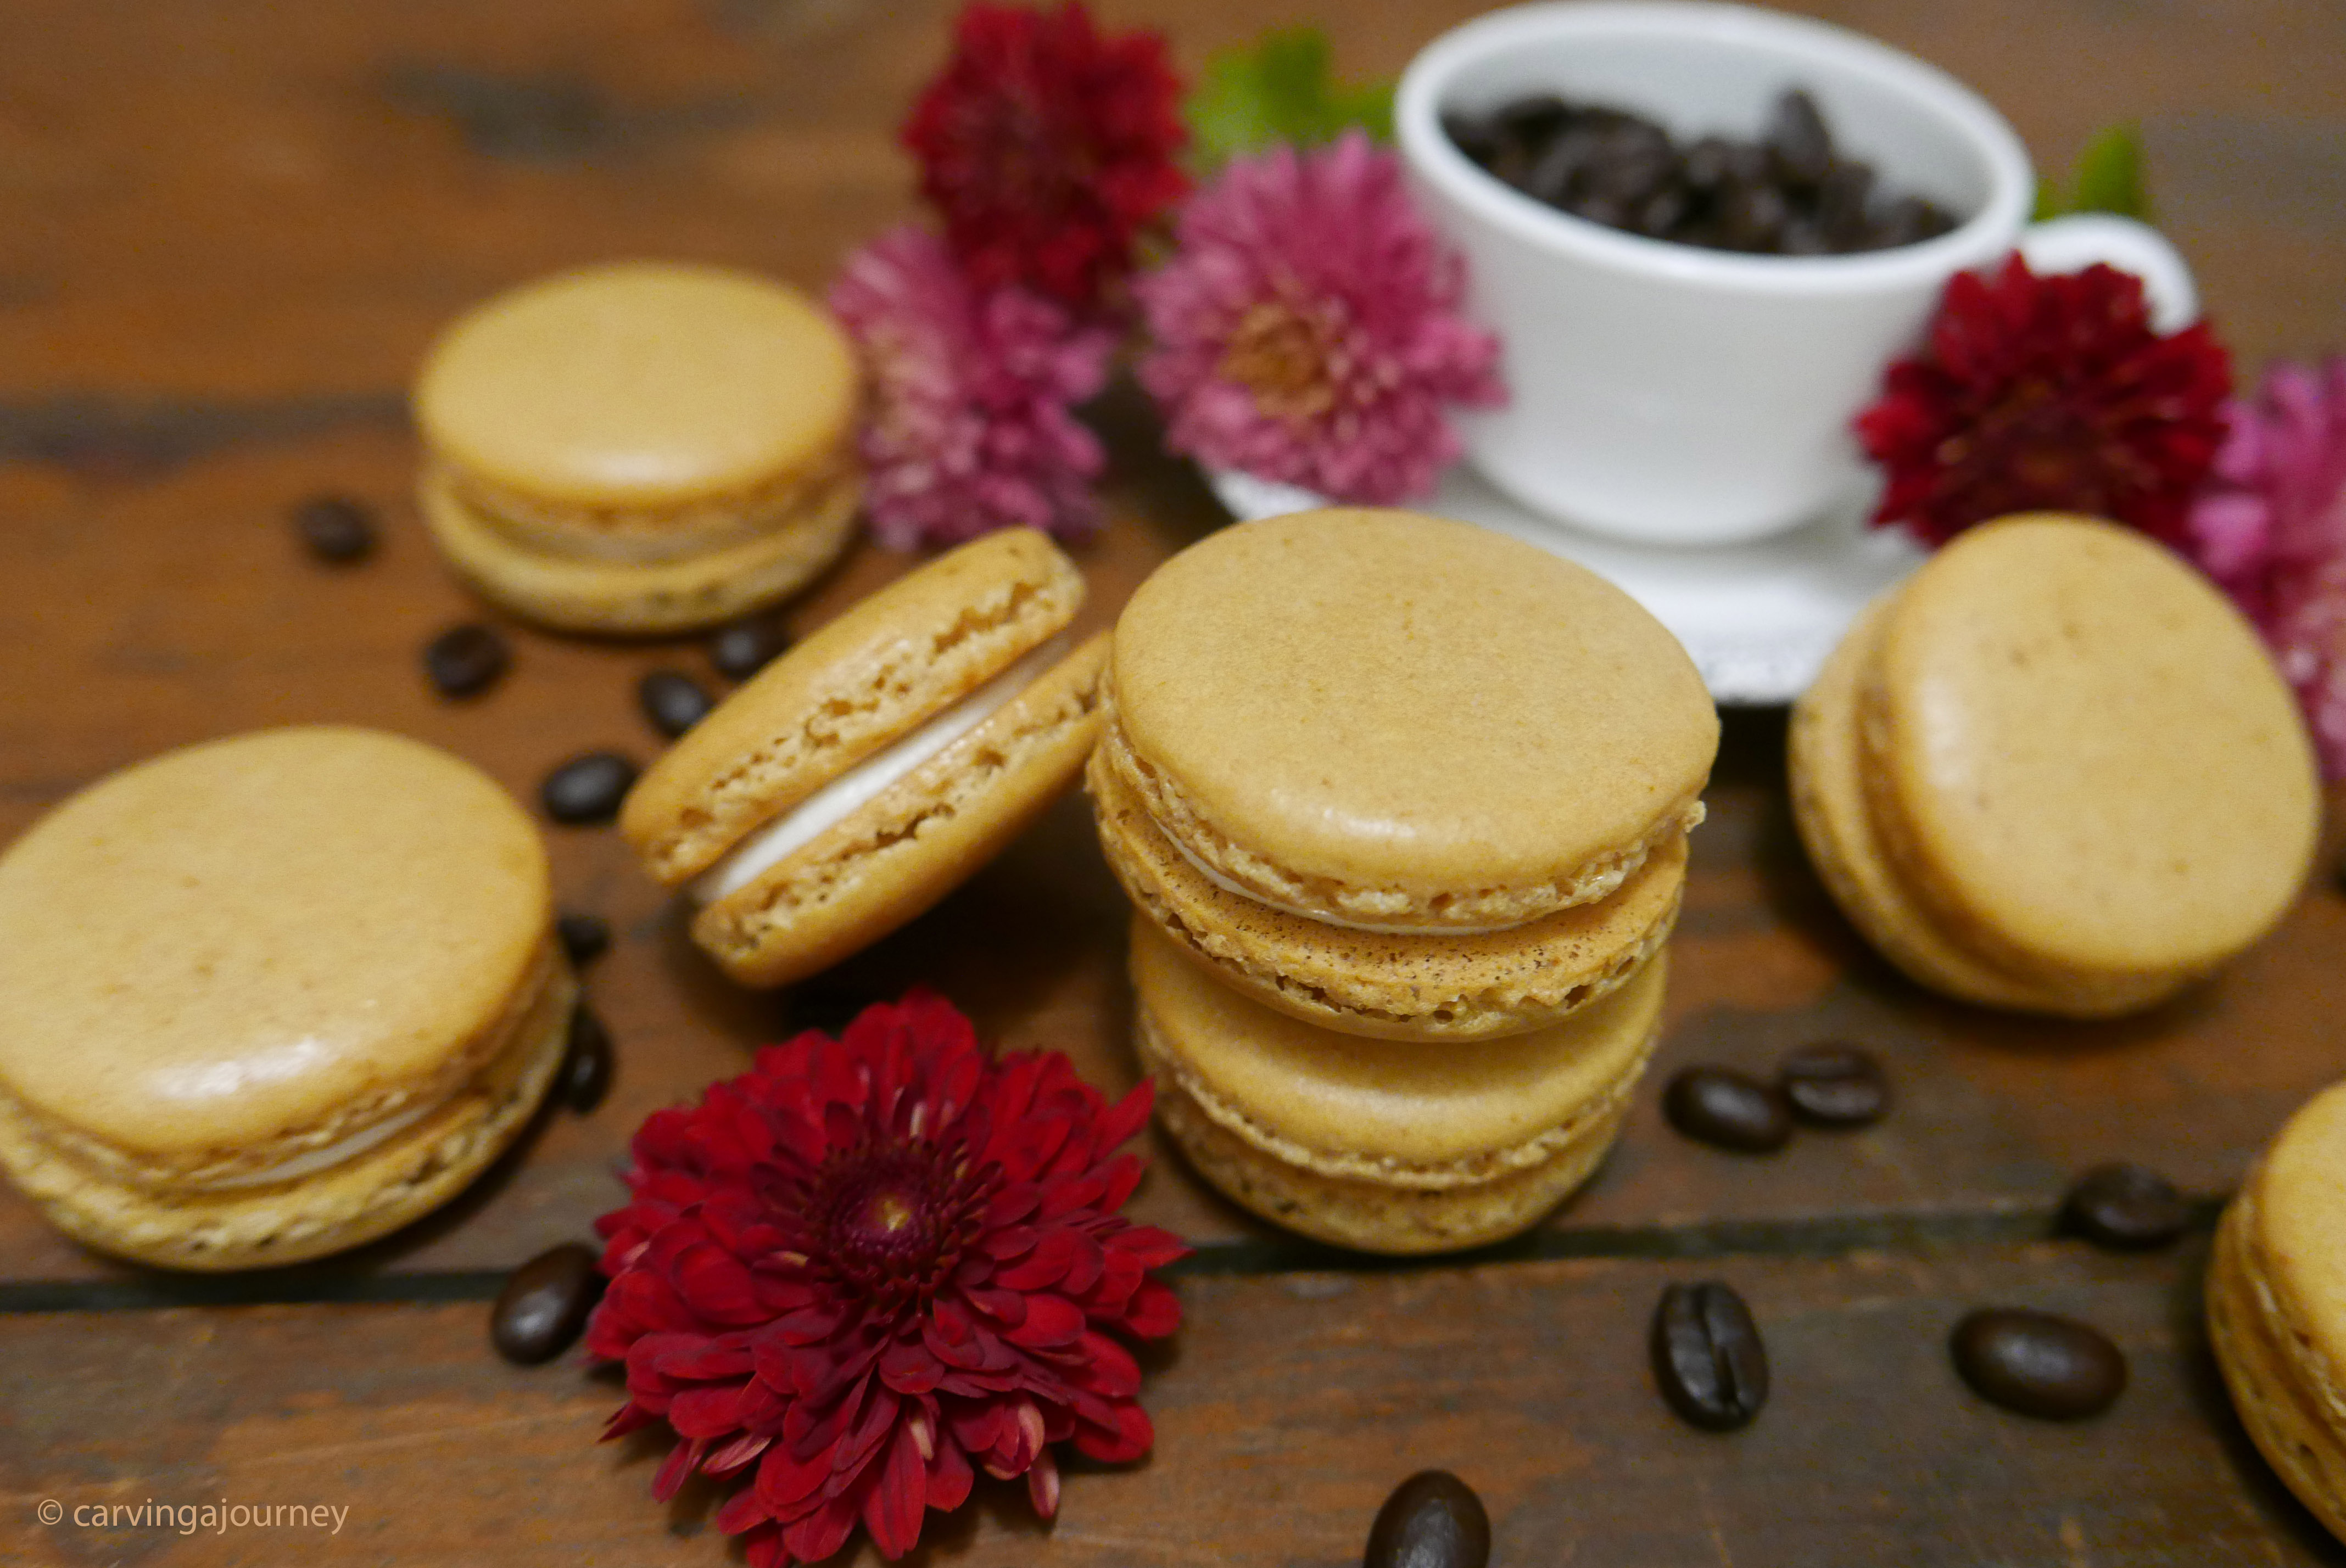 Coffee French Macarons with Vanilla Buttercream Filling